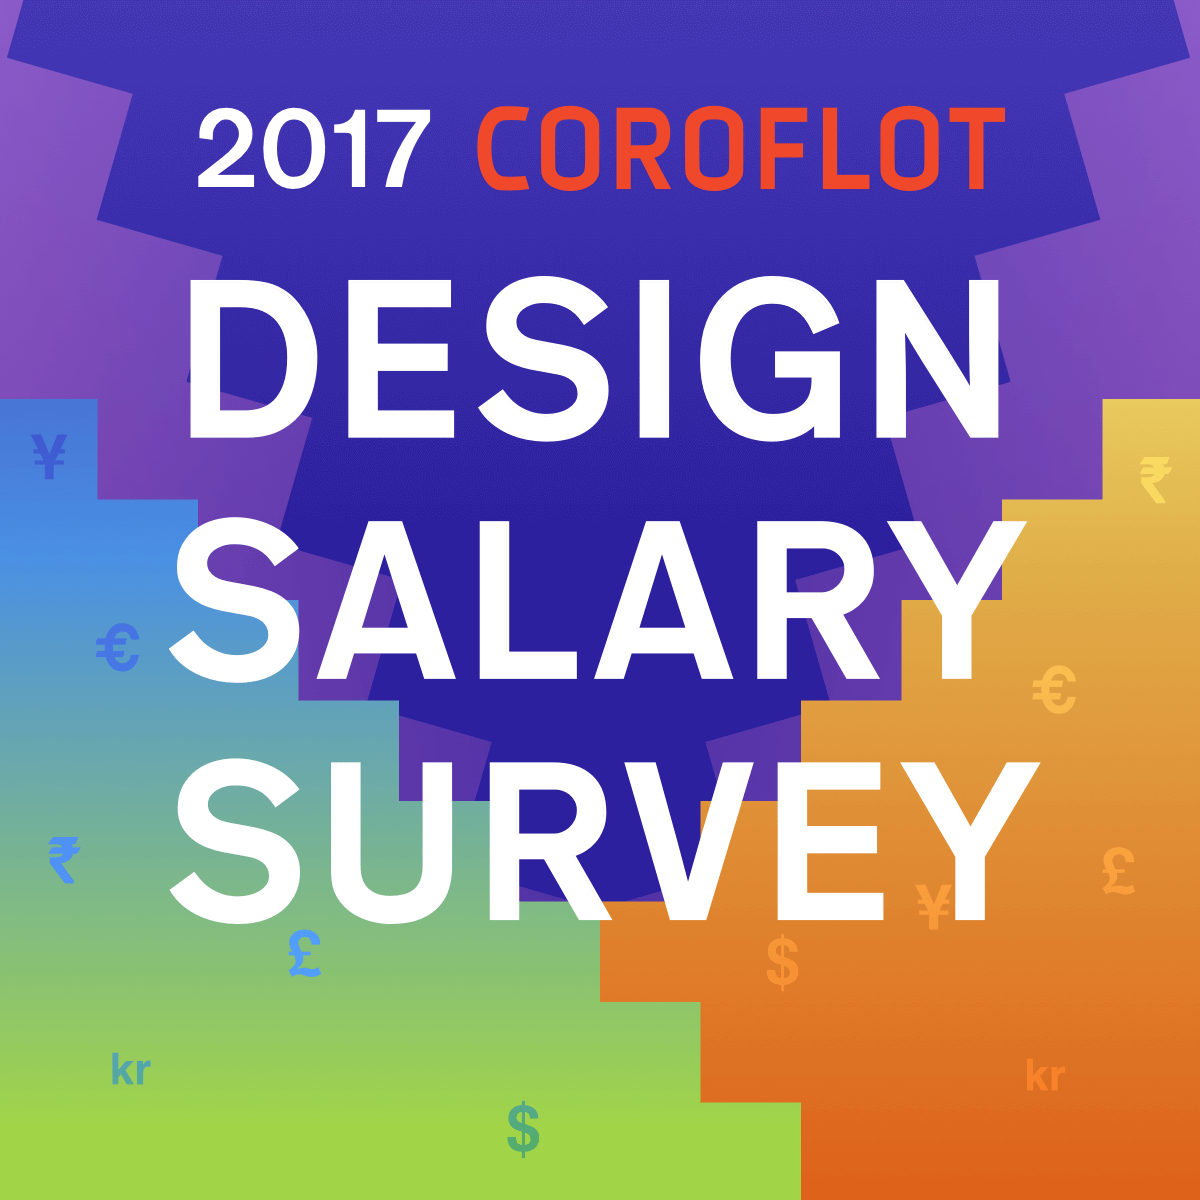 Coroflot 39 S Design Salary Guide Has Salary And Freelance Rates For More Than 50 Job Titles Spanning The Design And Creative Salary Guide Design Jobs Design